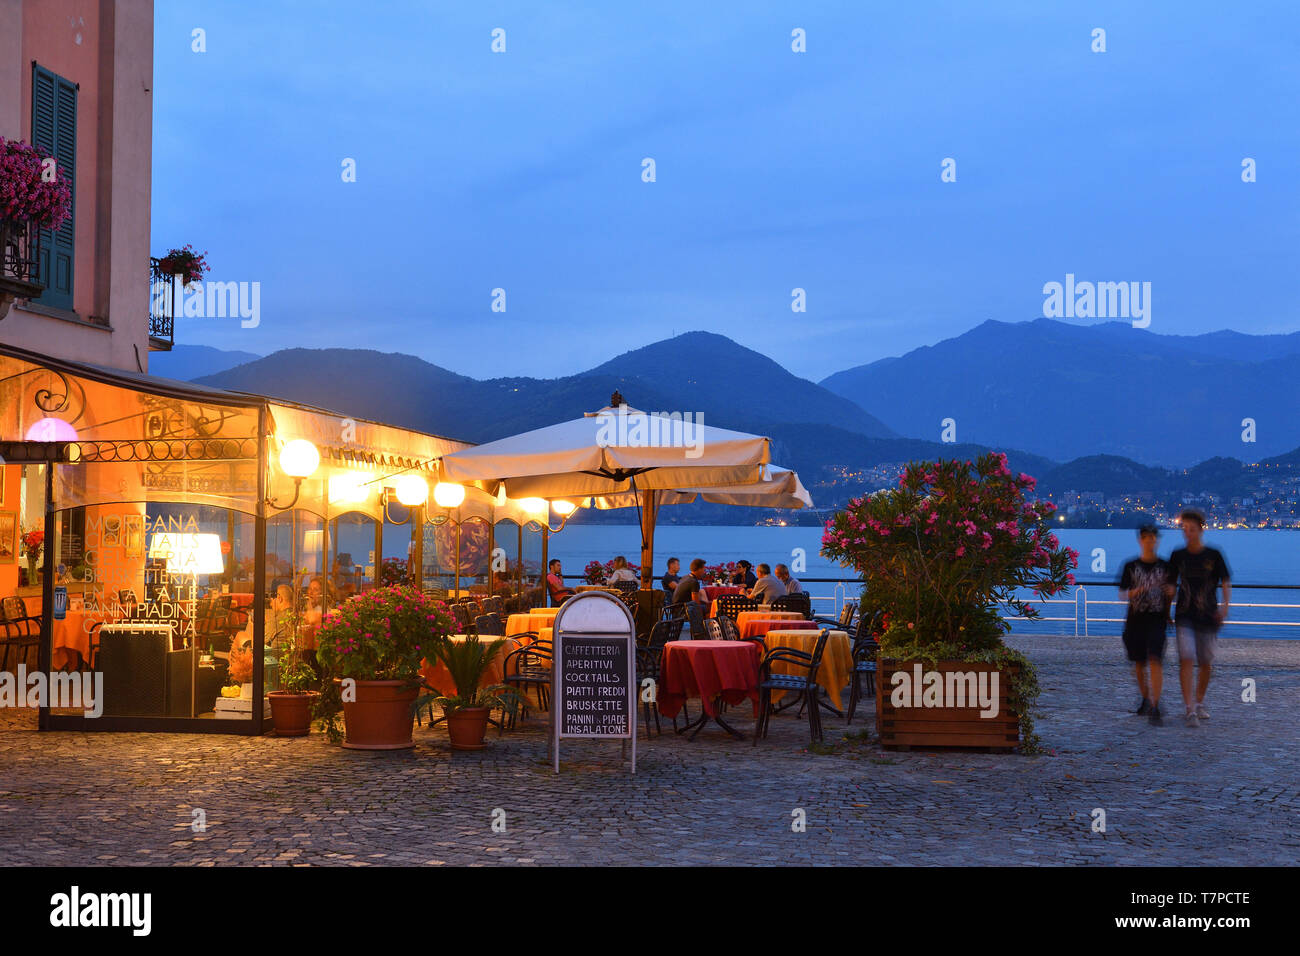 Italy, Lombardy, Iseo lake (Il Lago d'Iseo), Pisogne port - Stock Image